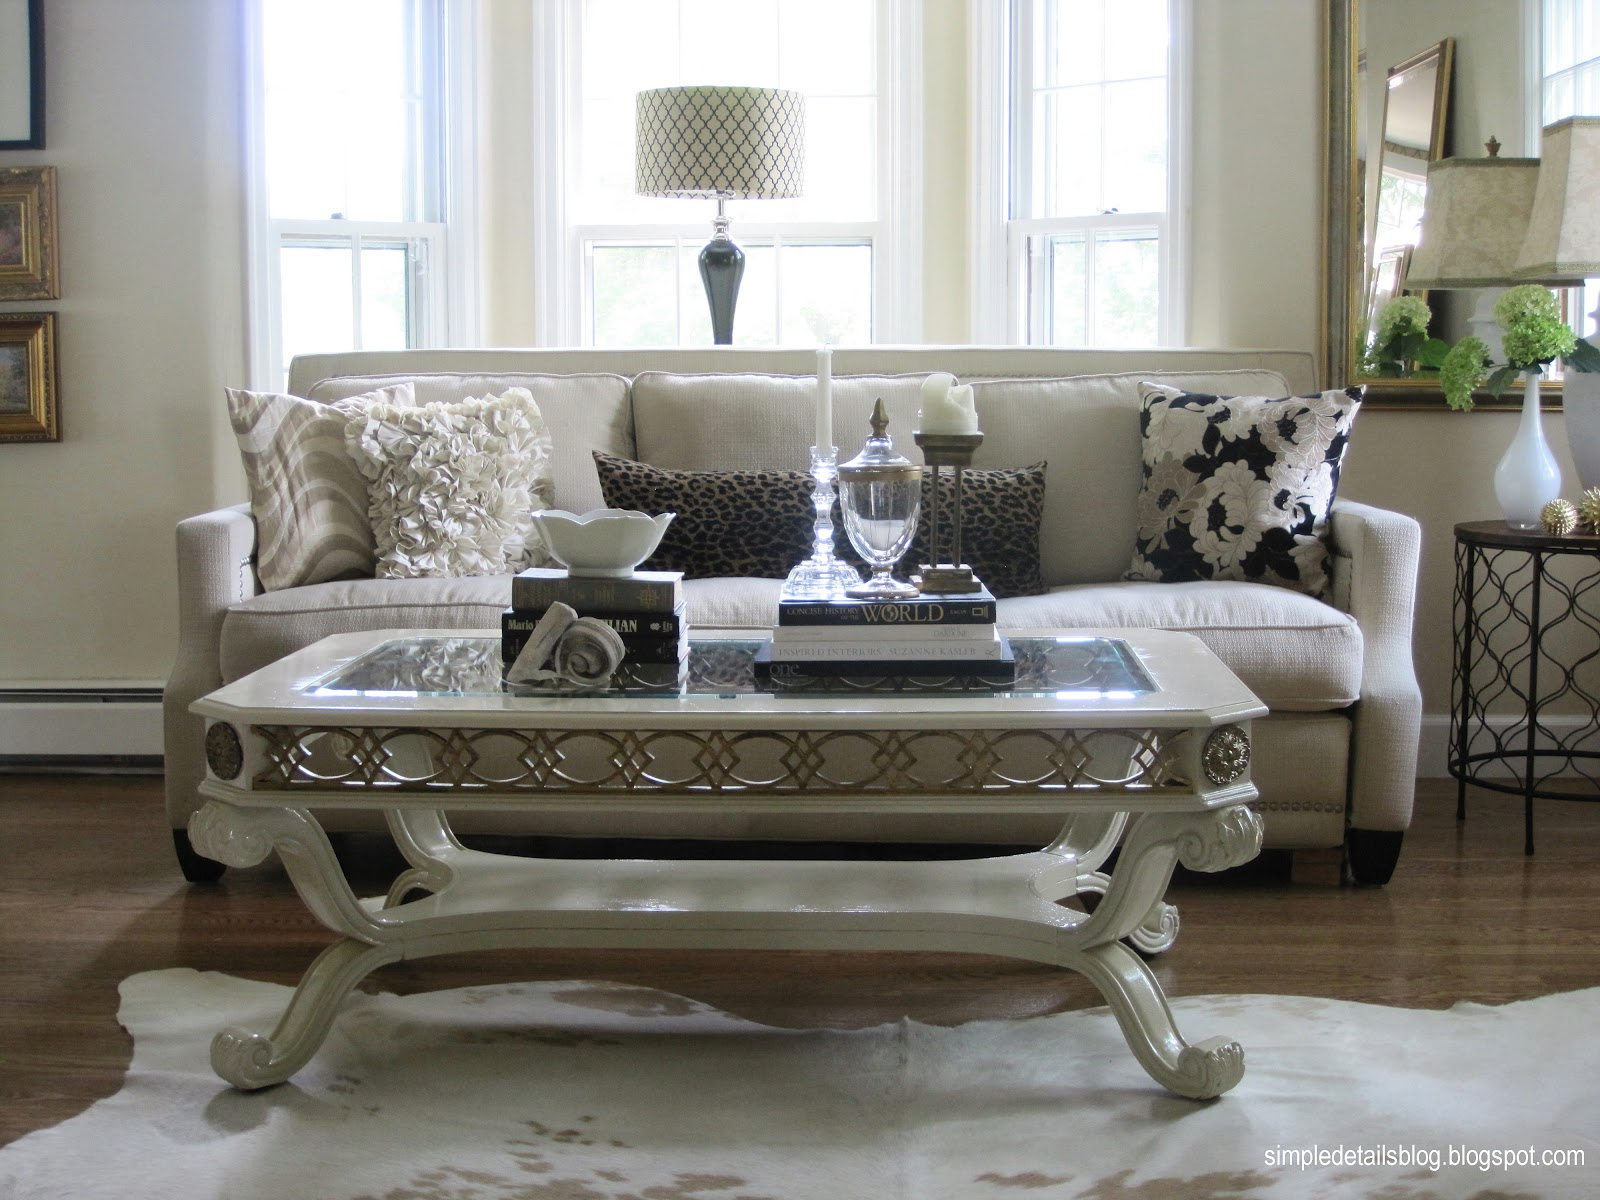 And her living room is a fabulous balance of comfortably cozy with a title=